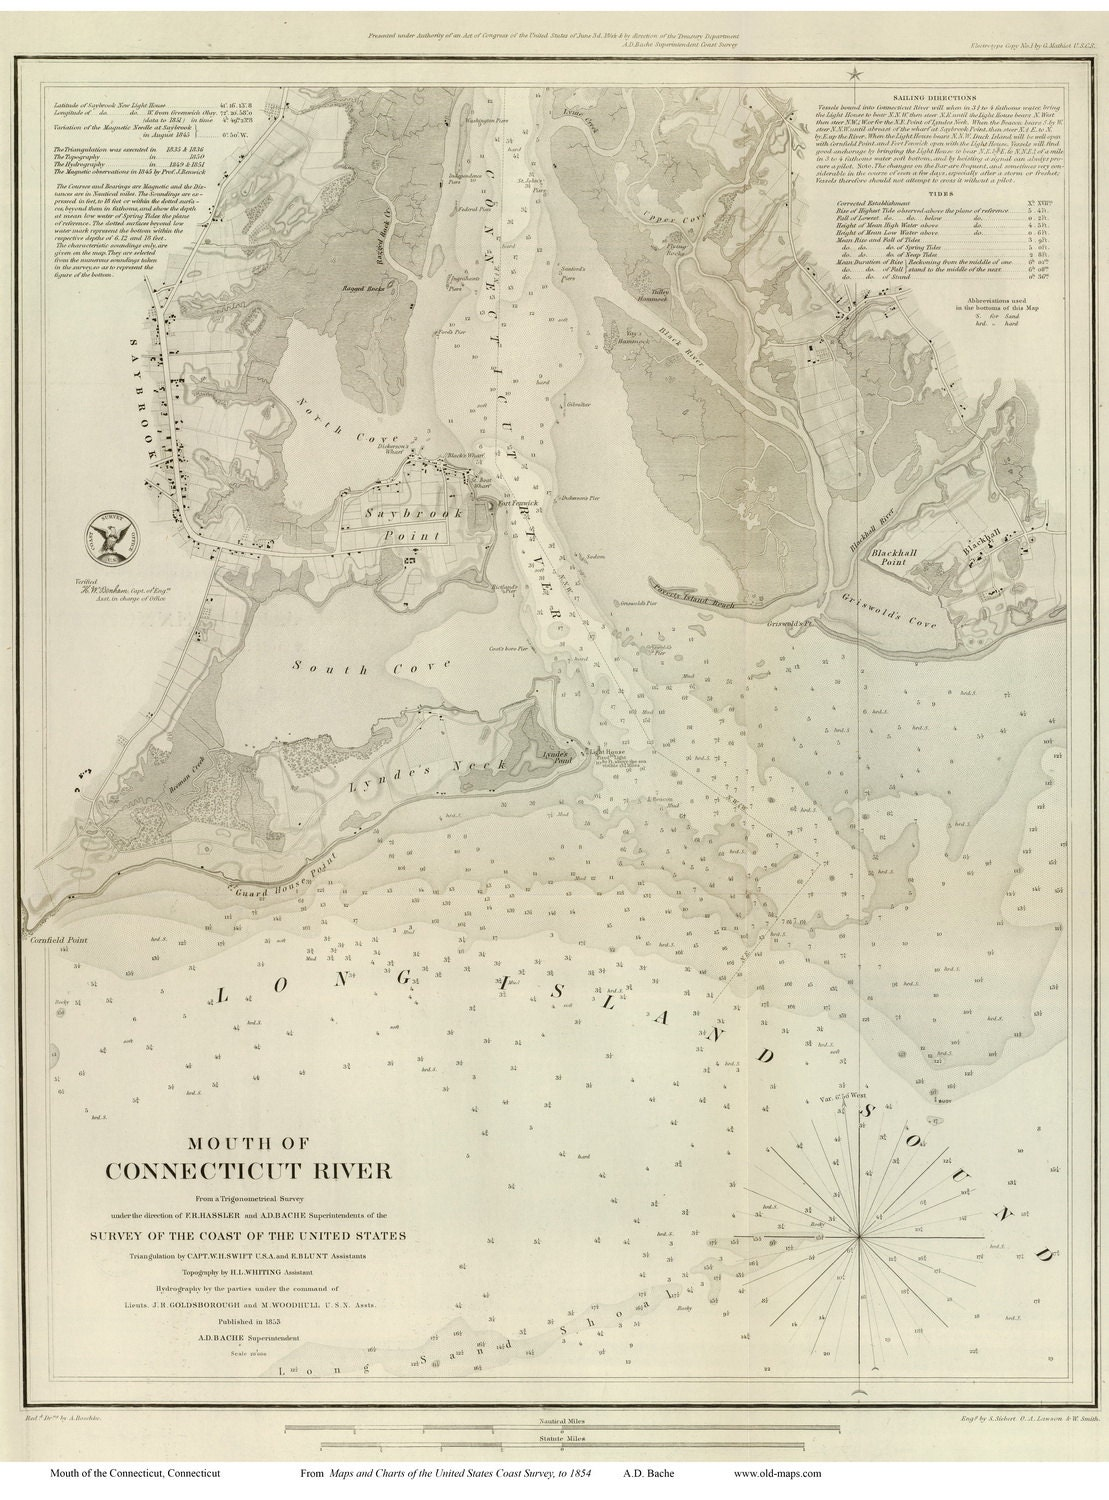 Mouth of connecticut river 1853 nautical map reprint zoom geenschuldenfo Choice Image